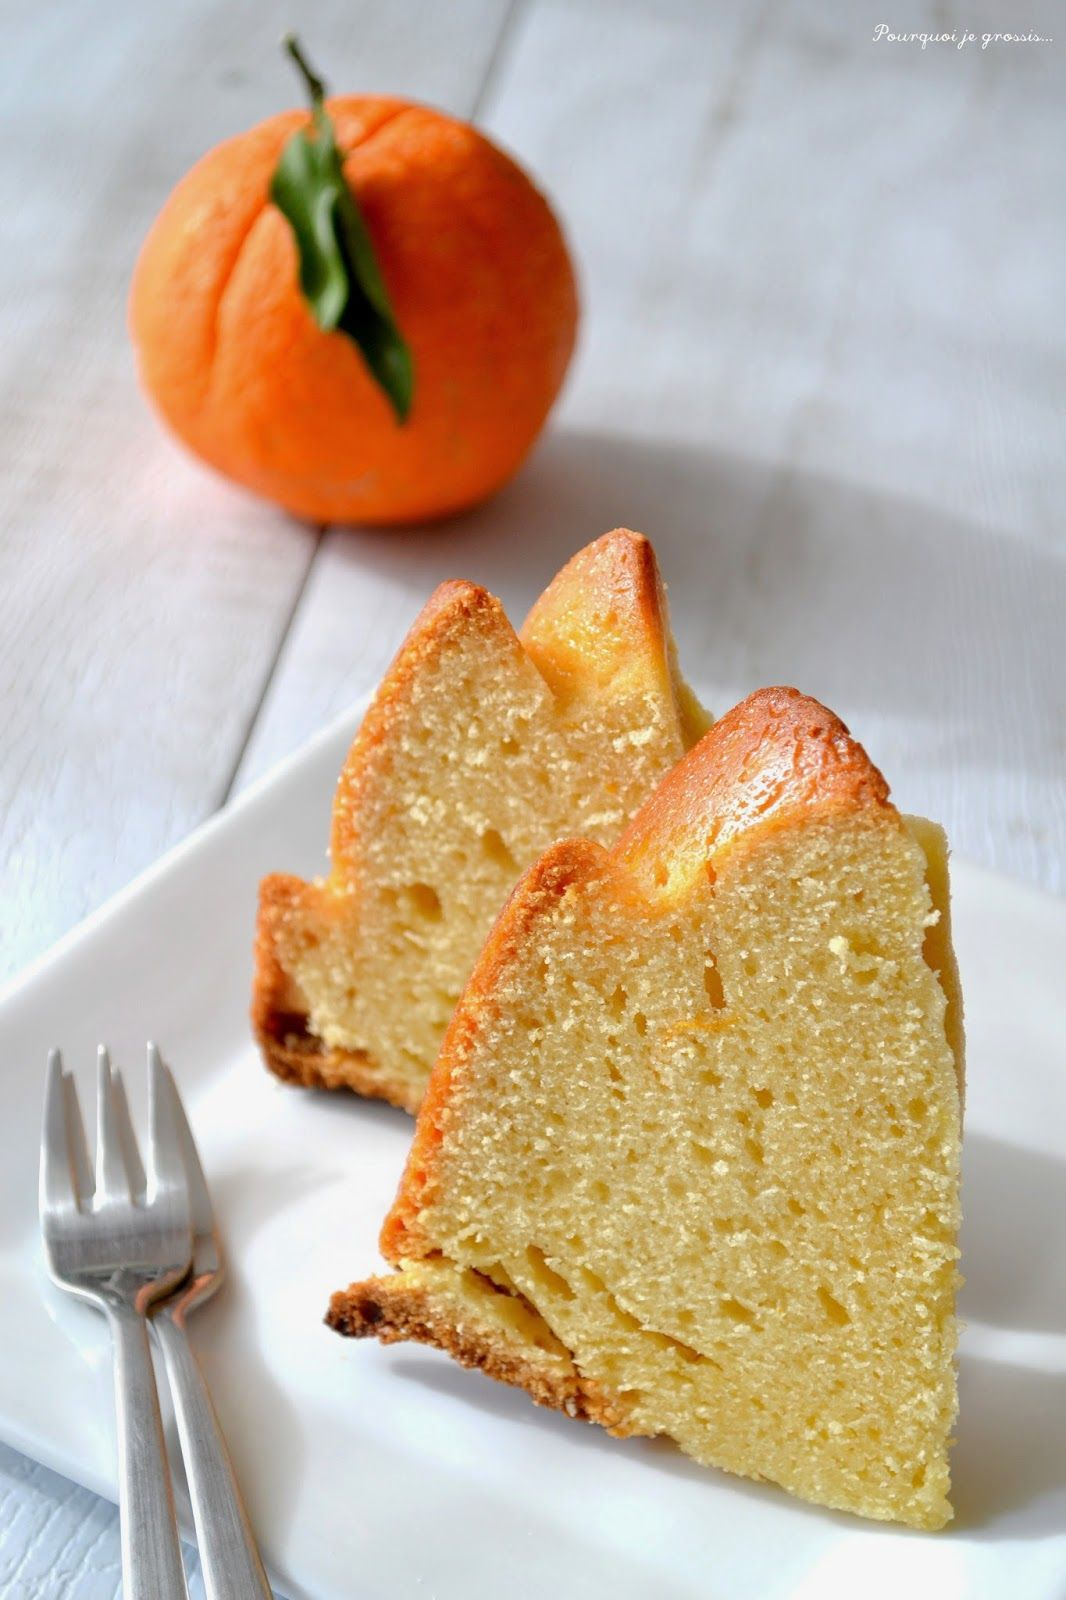 Bundt cake orange, amande & miel. Orange, almonds & honey bundt cake. http://pourquoi-je-grossis.blogspot.fr/2015/02/bundt-cake-orange-amande-miel.html